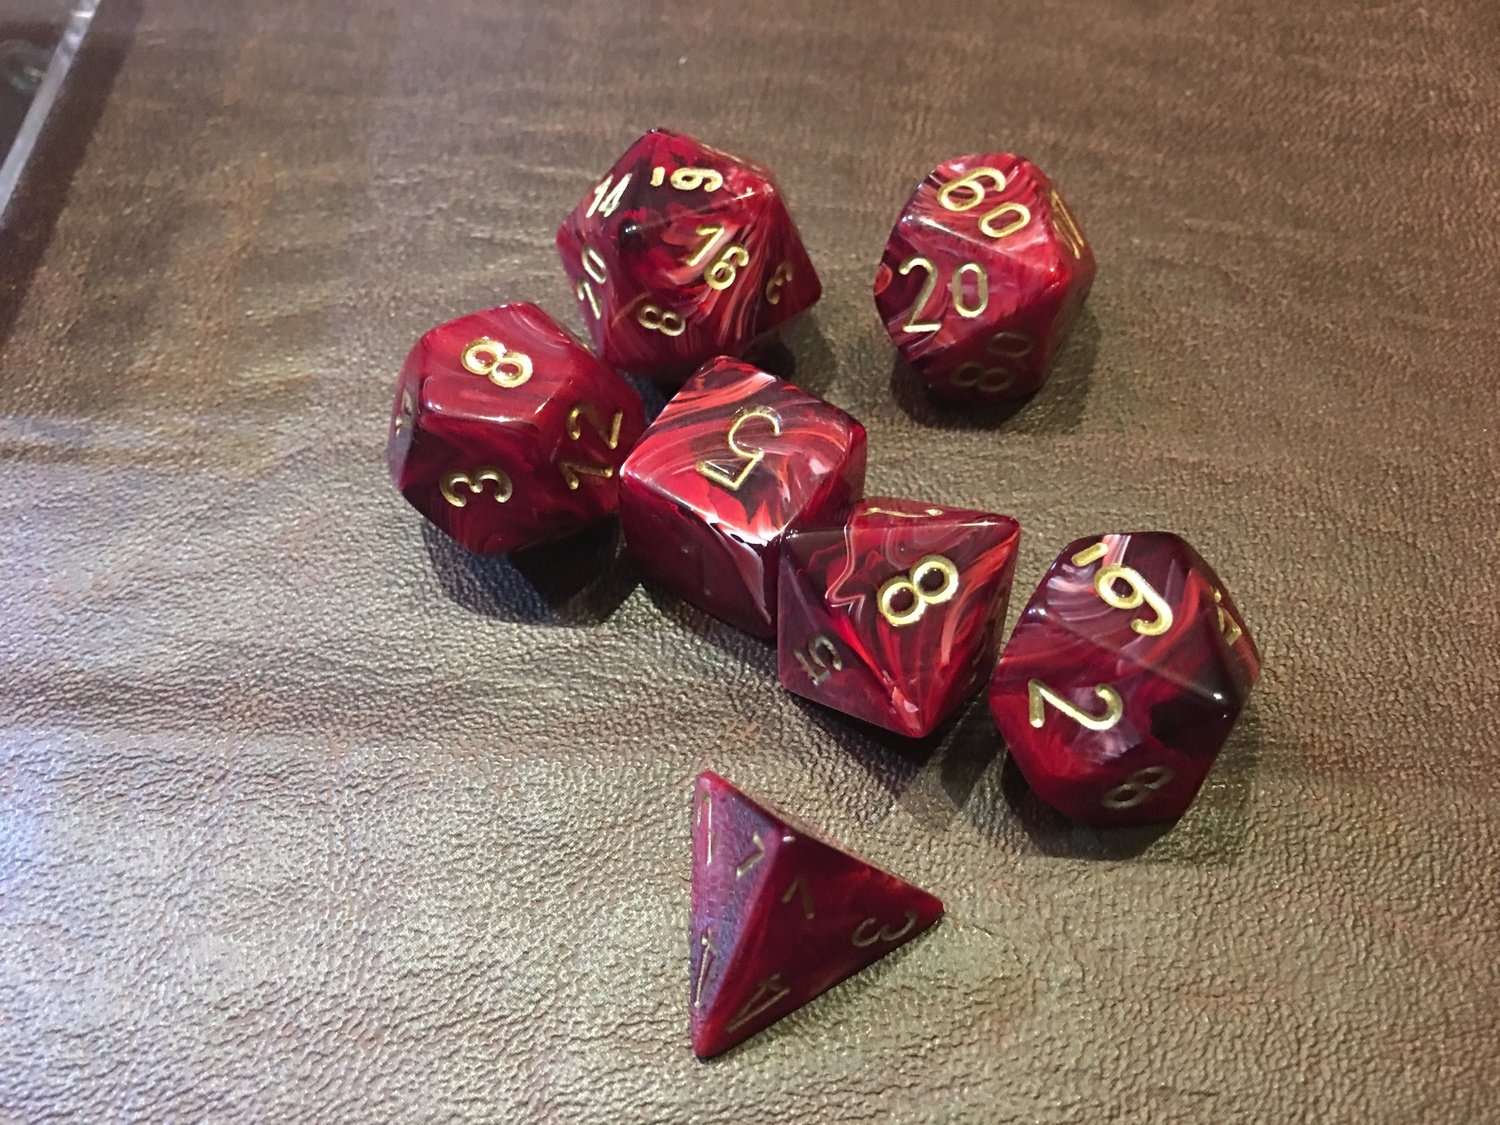 7 Die Dice Polyhedral Set - Vortex Burgundy with Gold